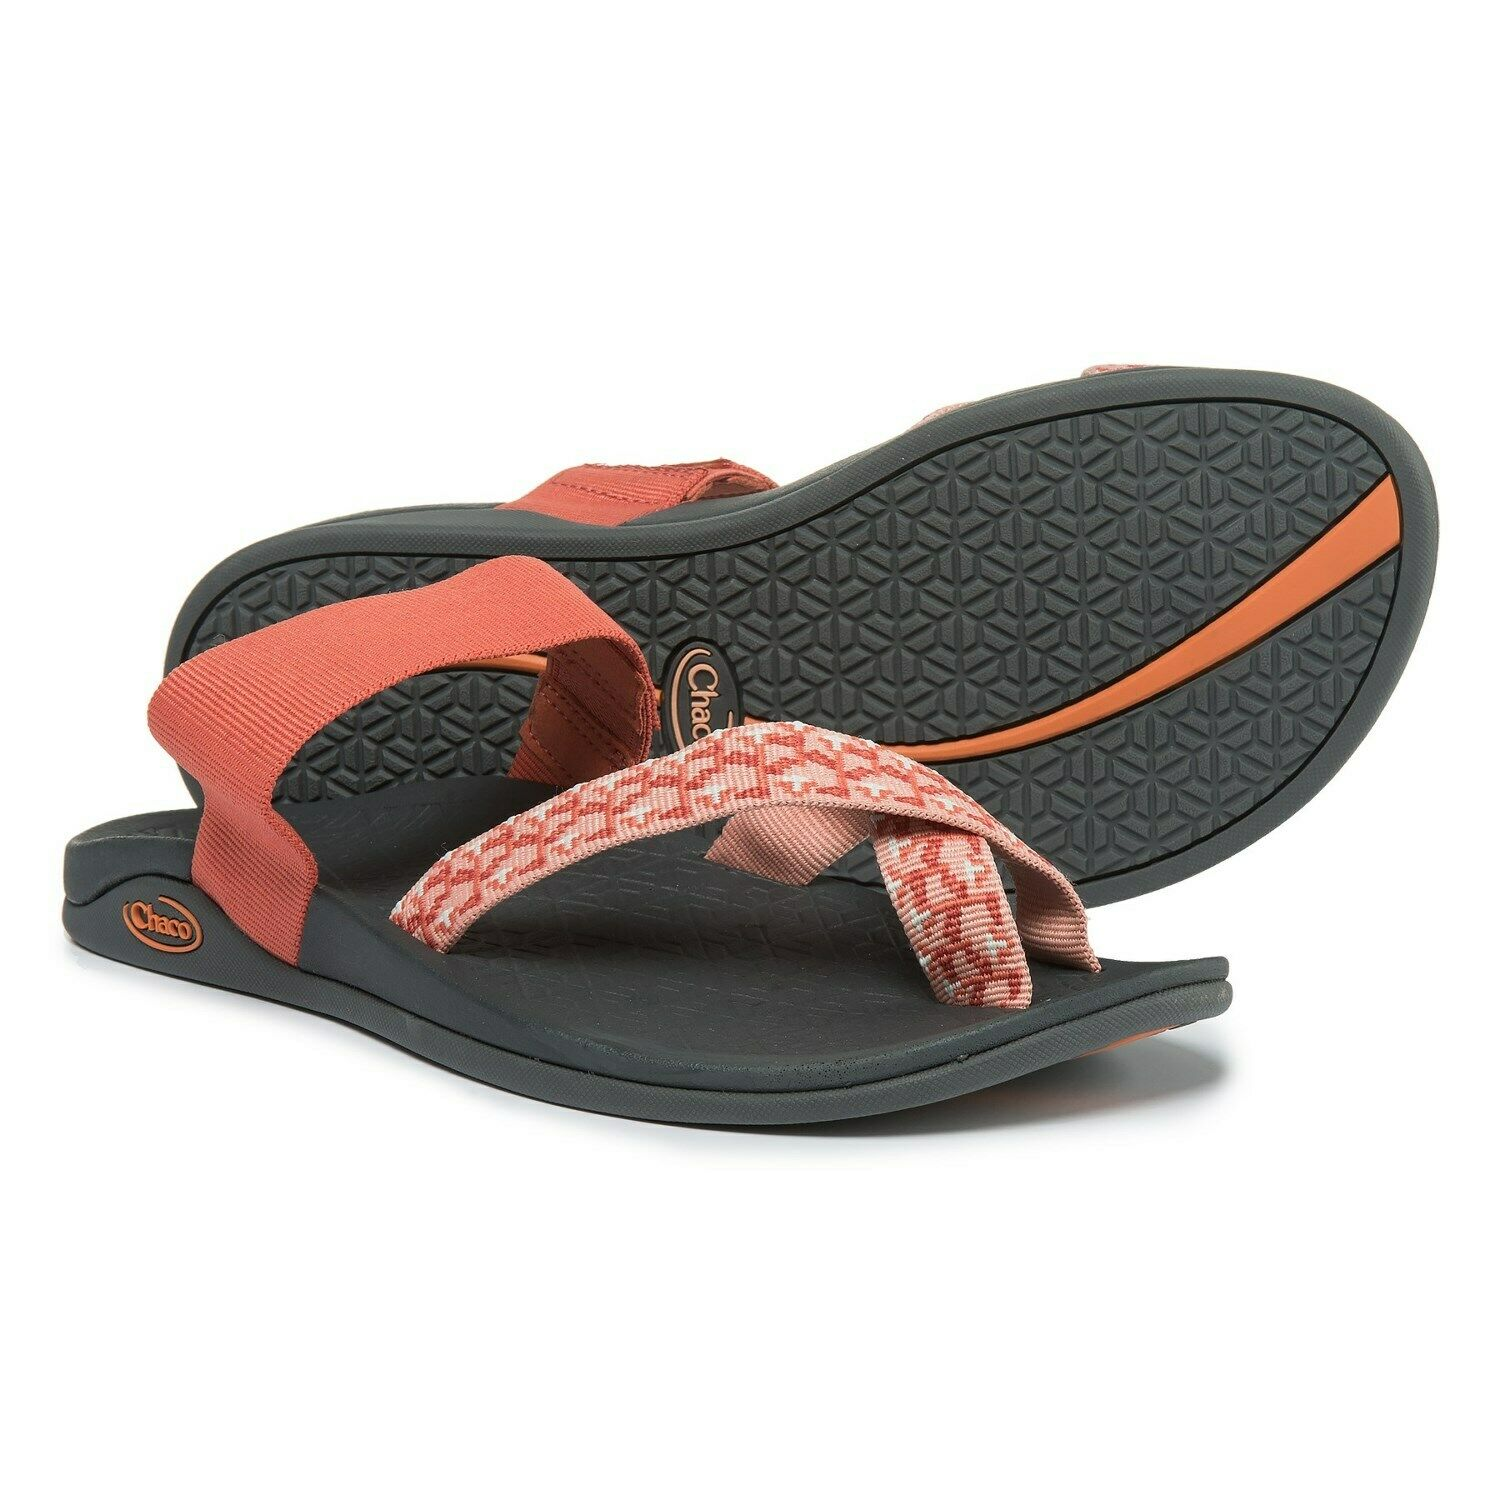 Chaco Tetra Cloud Sandals Ginger Spice Womens Size 6